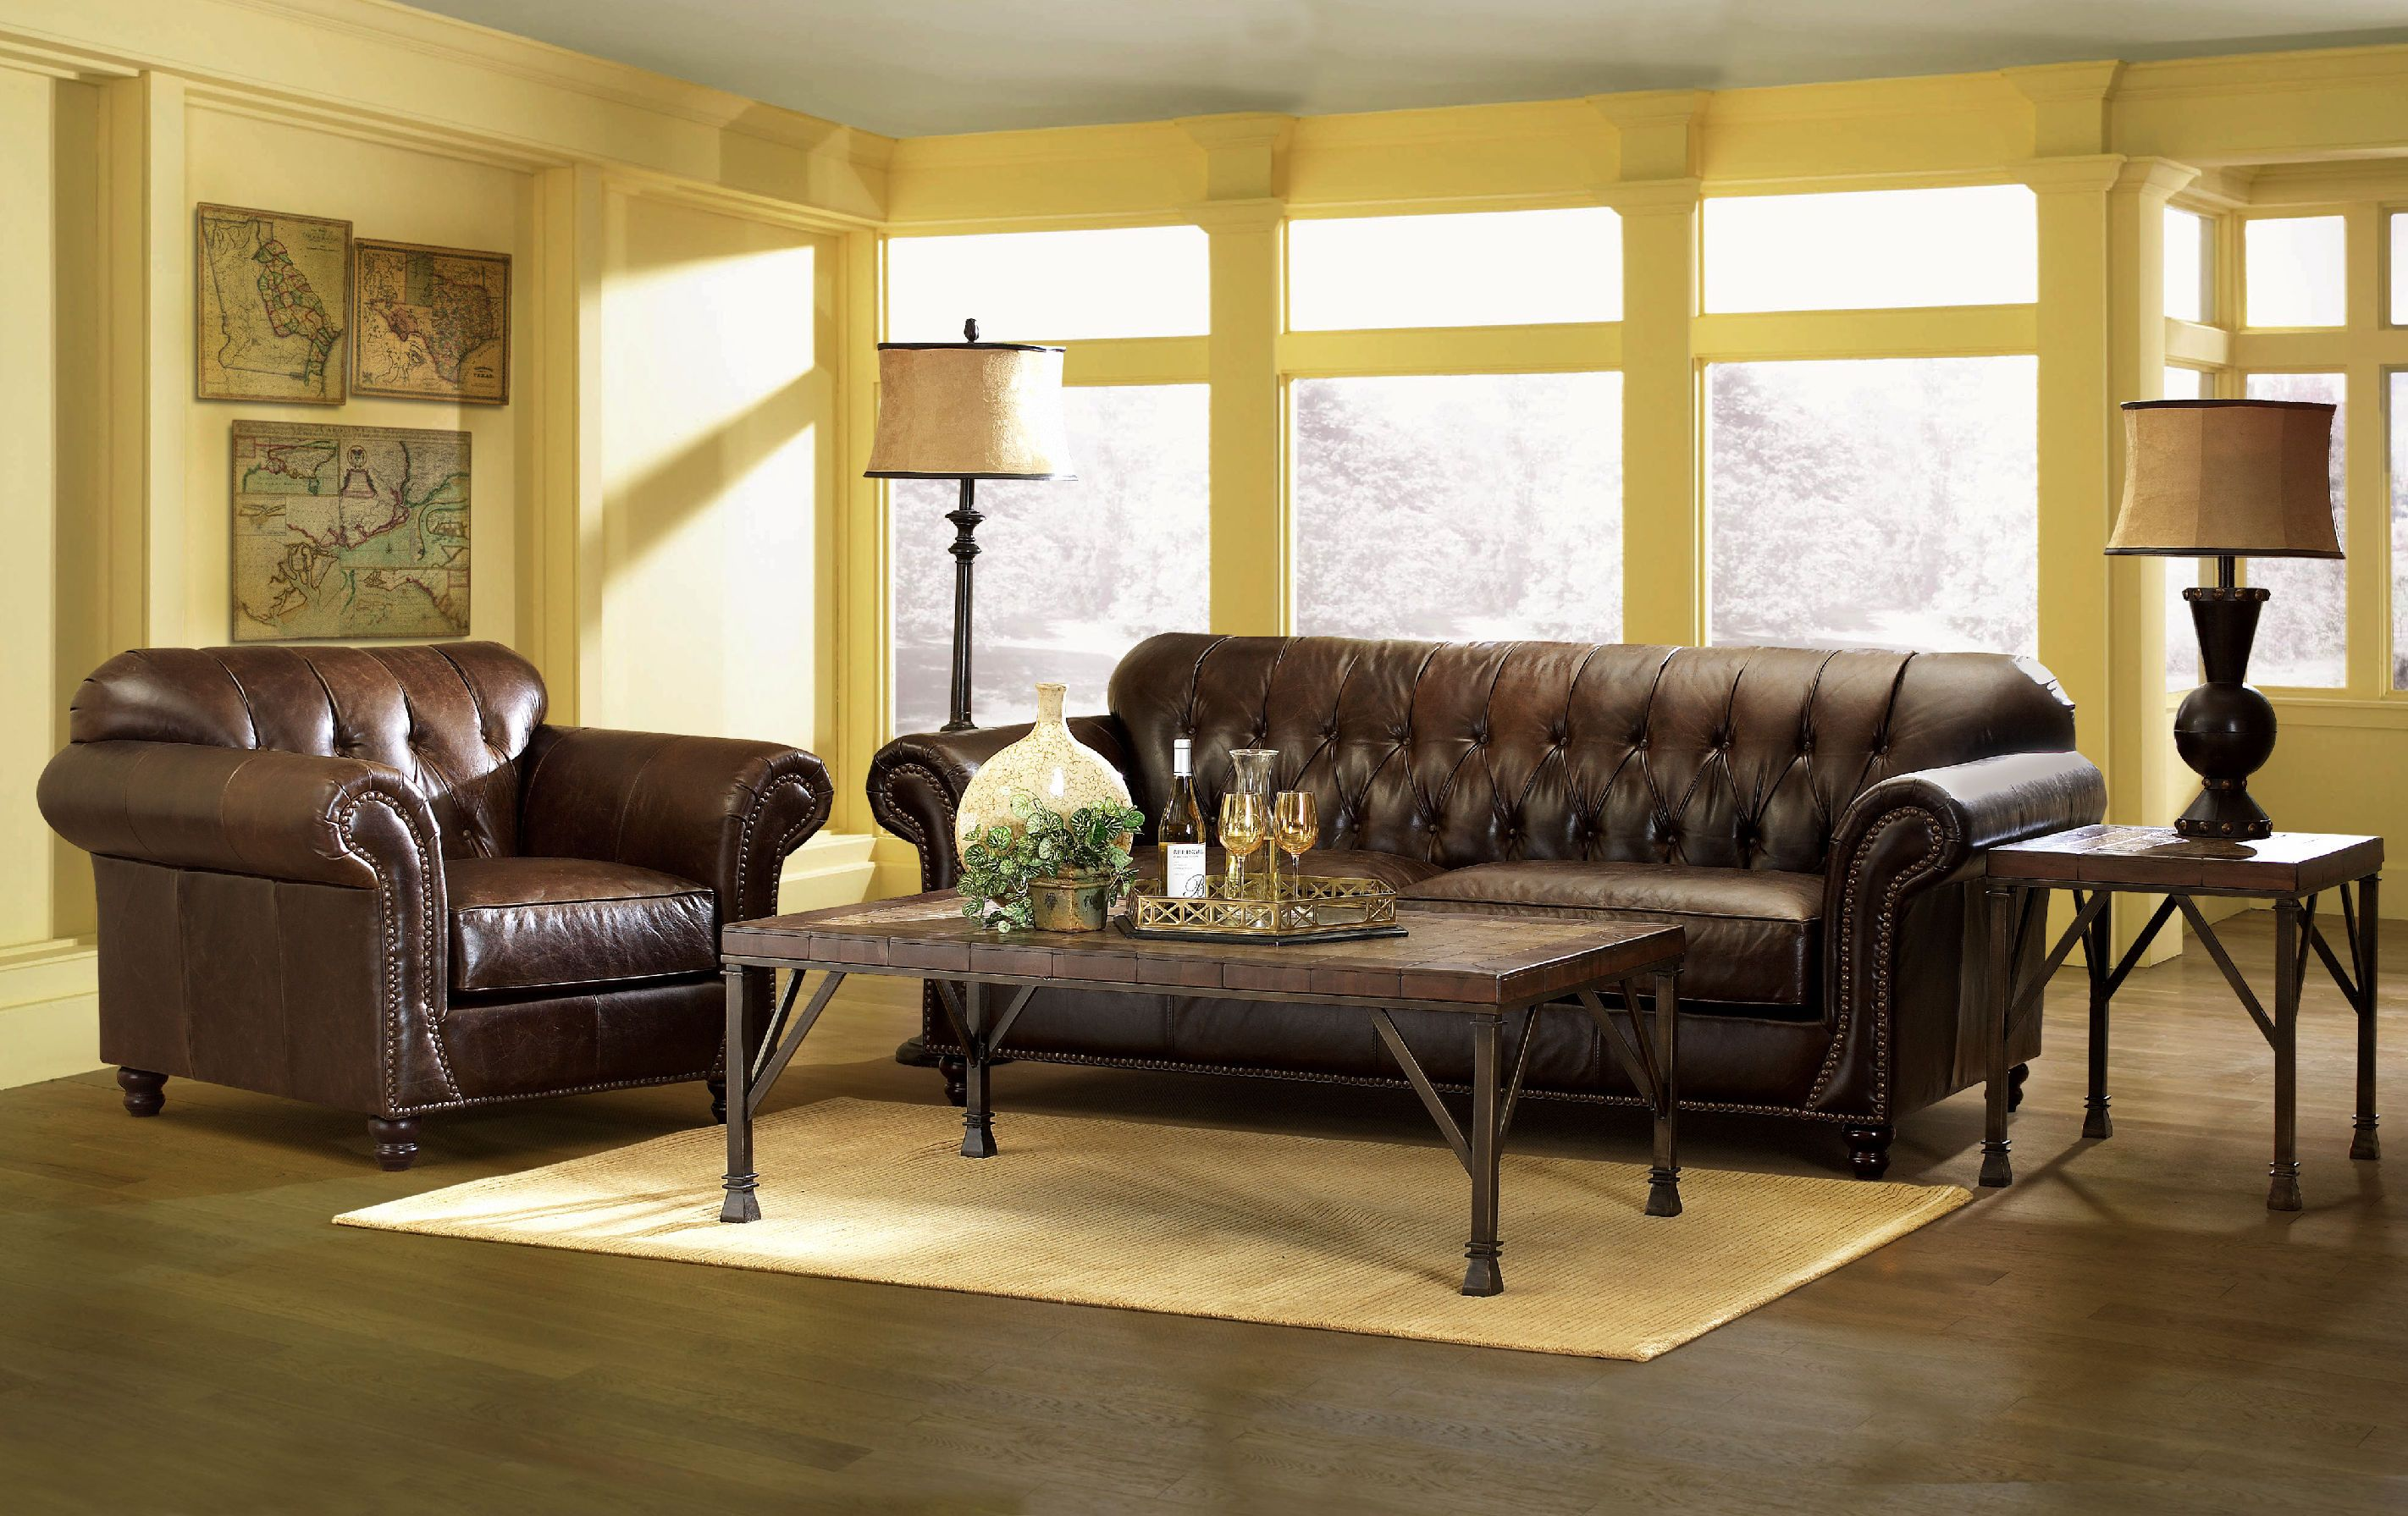 Excellent Mid century Tufted Leather Brown Couches With Shade